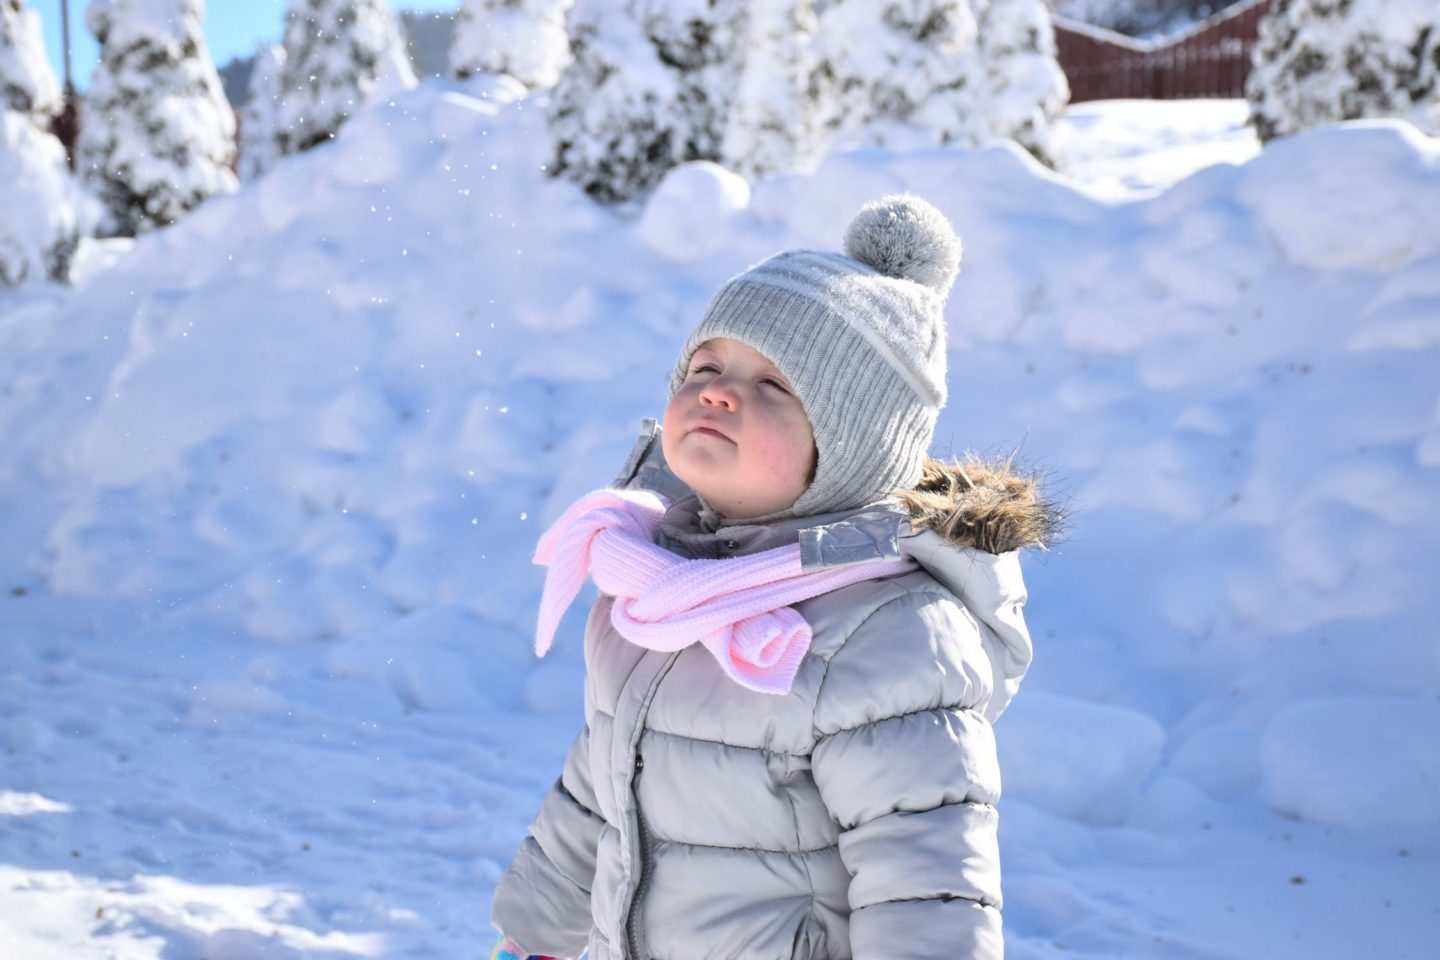 Protecting Your Children In The Winter: Top Tips For Parents